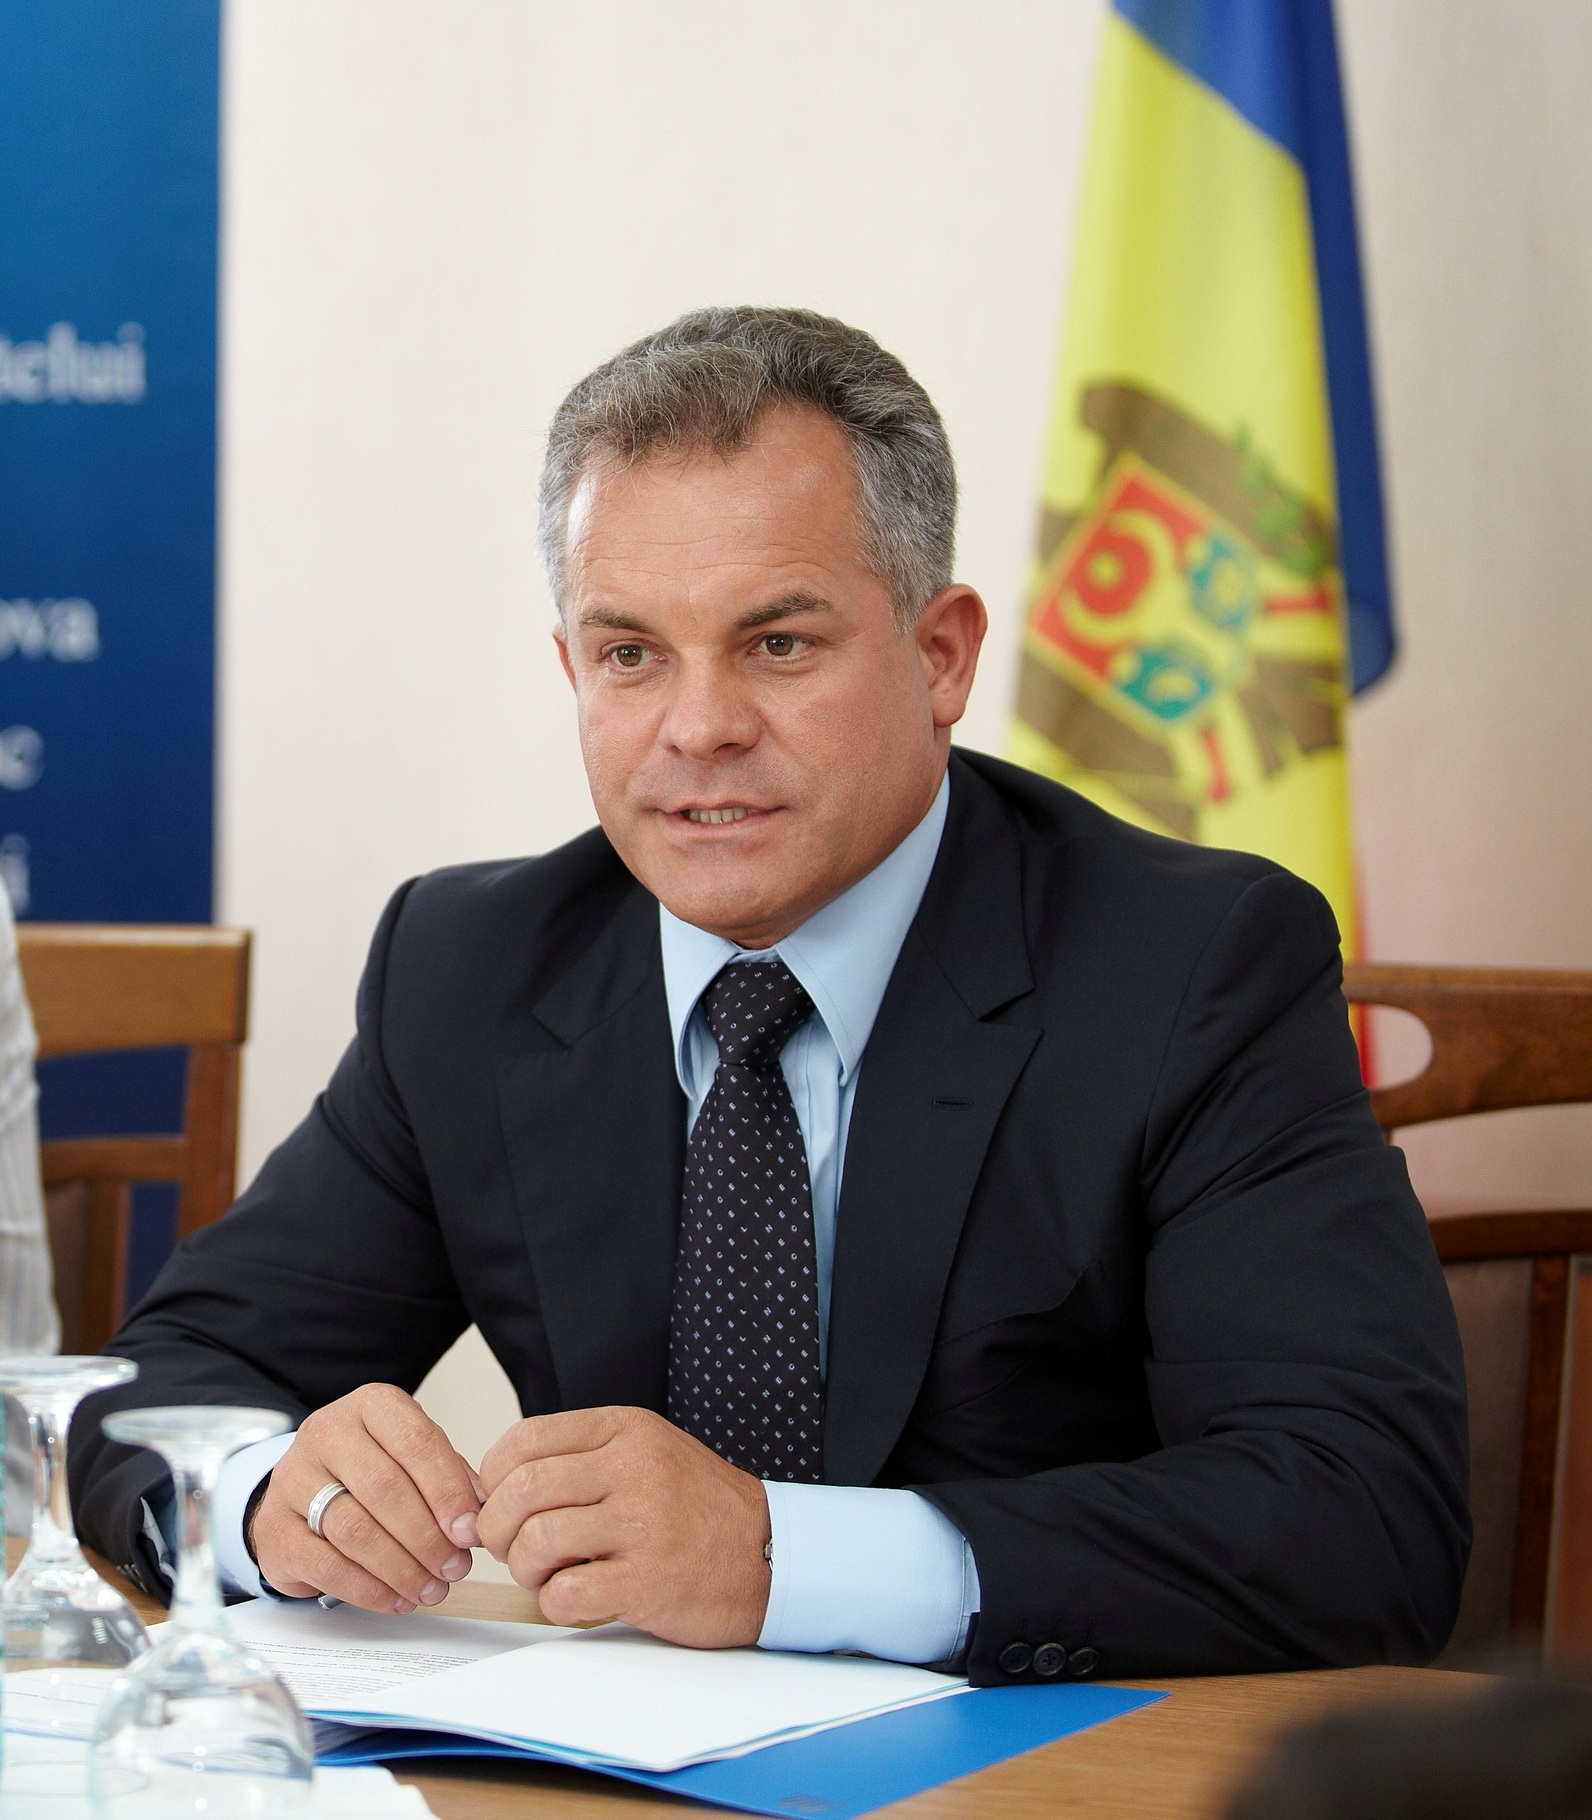 Moldovan oligarch and head of the ruling Democratic Party (PDM) of Moldova Vlad Plahotniuc pictured in 2011. (Wikimedia Commons)